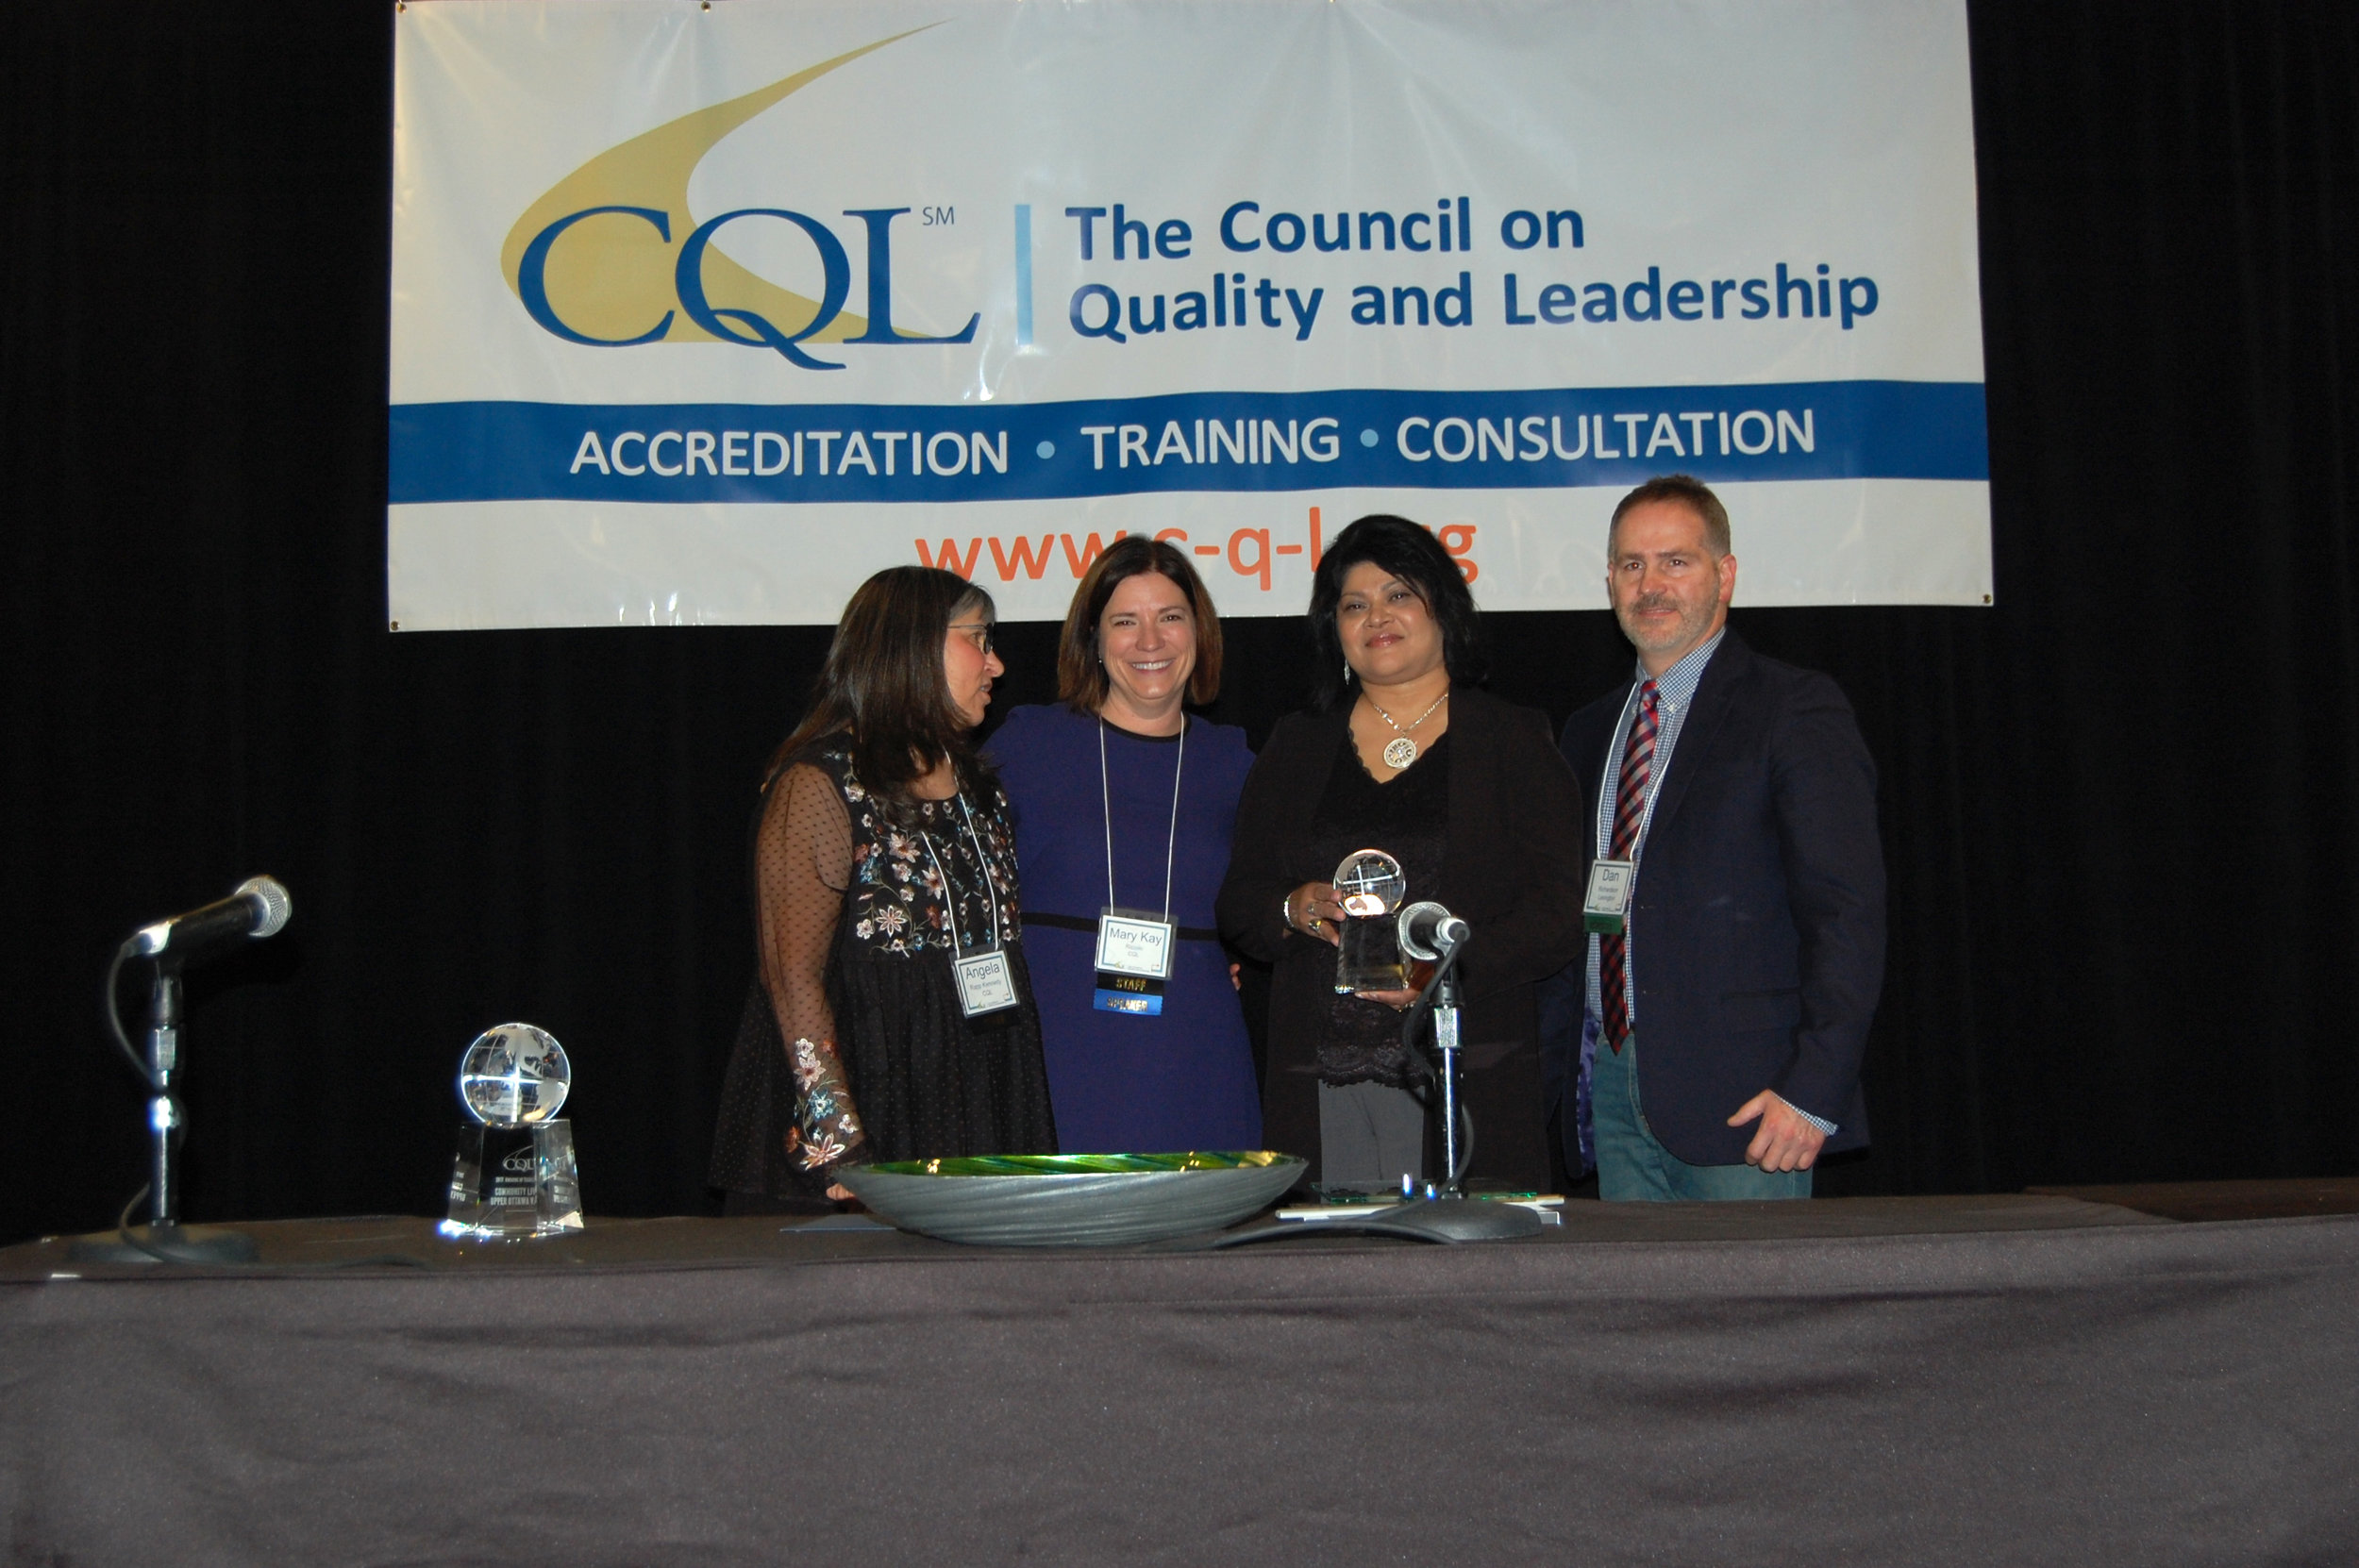 Angela Rapp Kennedy, Vice President, CQL; Mary Kay Rizzolo, CEO, CQL; Shaloni Winston, Executive Director, Lexington; and Daniel Richardson, Deputy Executive Director, Lexington.